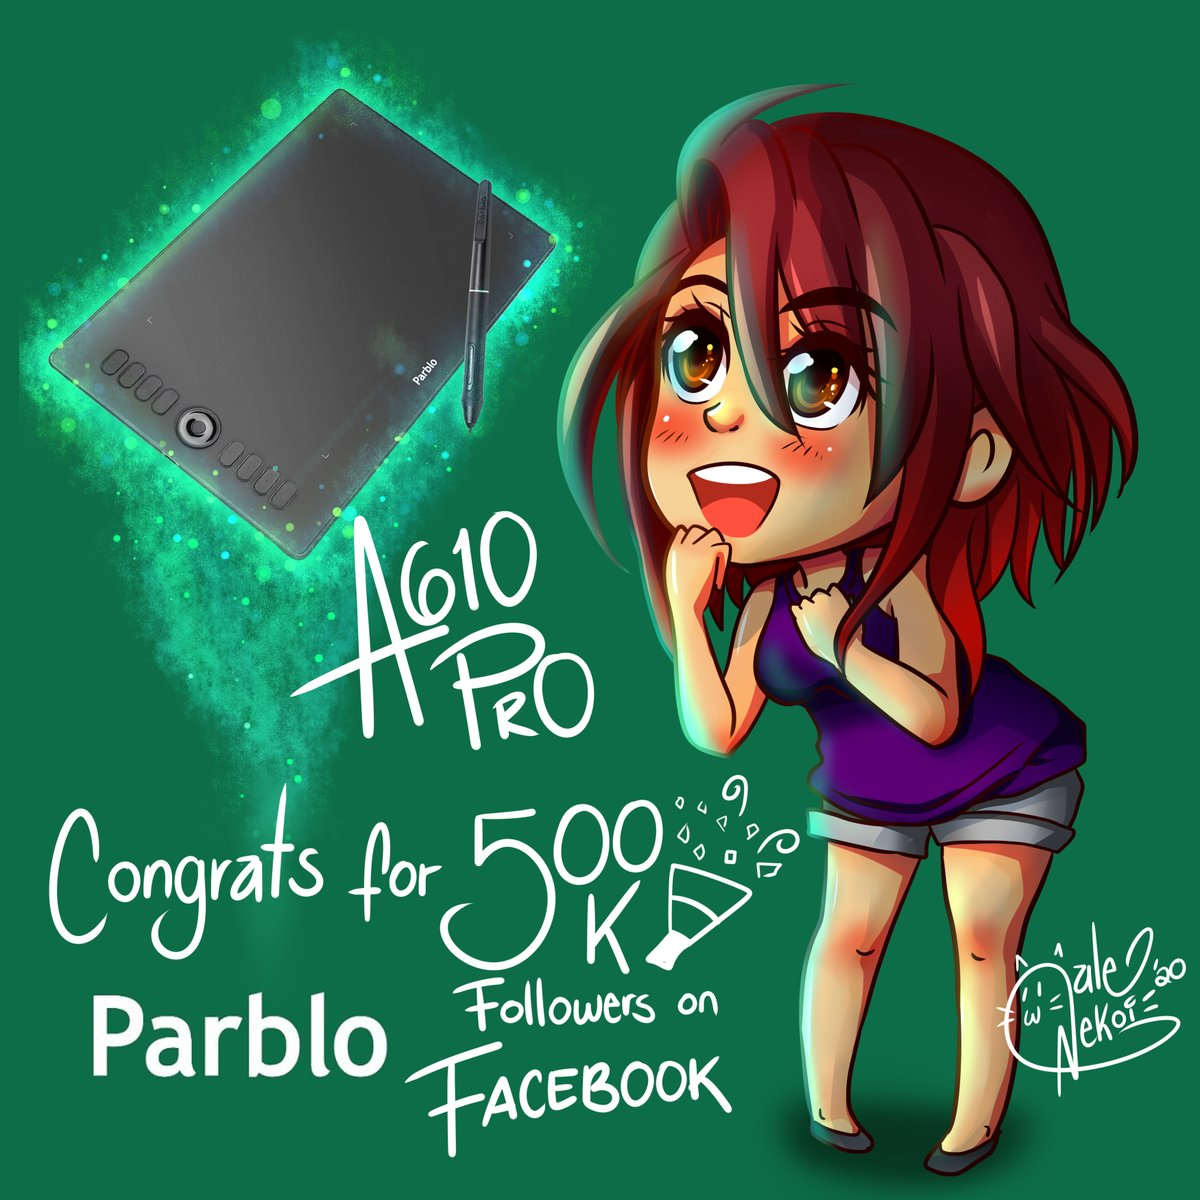 Thank you very much to @ParbloTech  for this incredible prize, I hope soon to be able to use it !!😍😍 and again many congratulations for the 500k on FB🎉🎉🎉 I hope that soon there will be many more !!  #parblo #parblo610pro https://t.co/6CaZLSLtvs